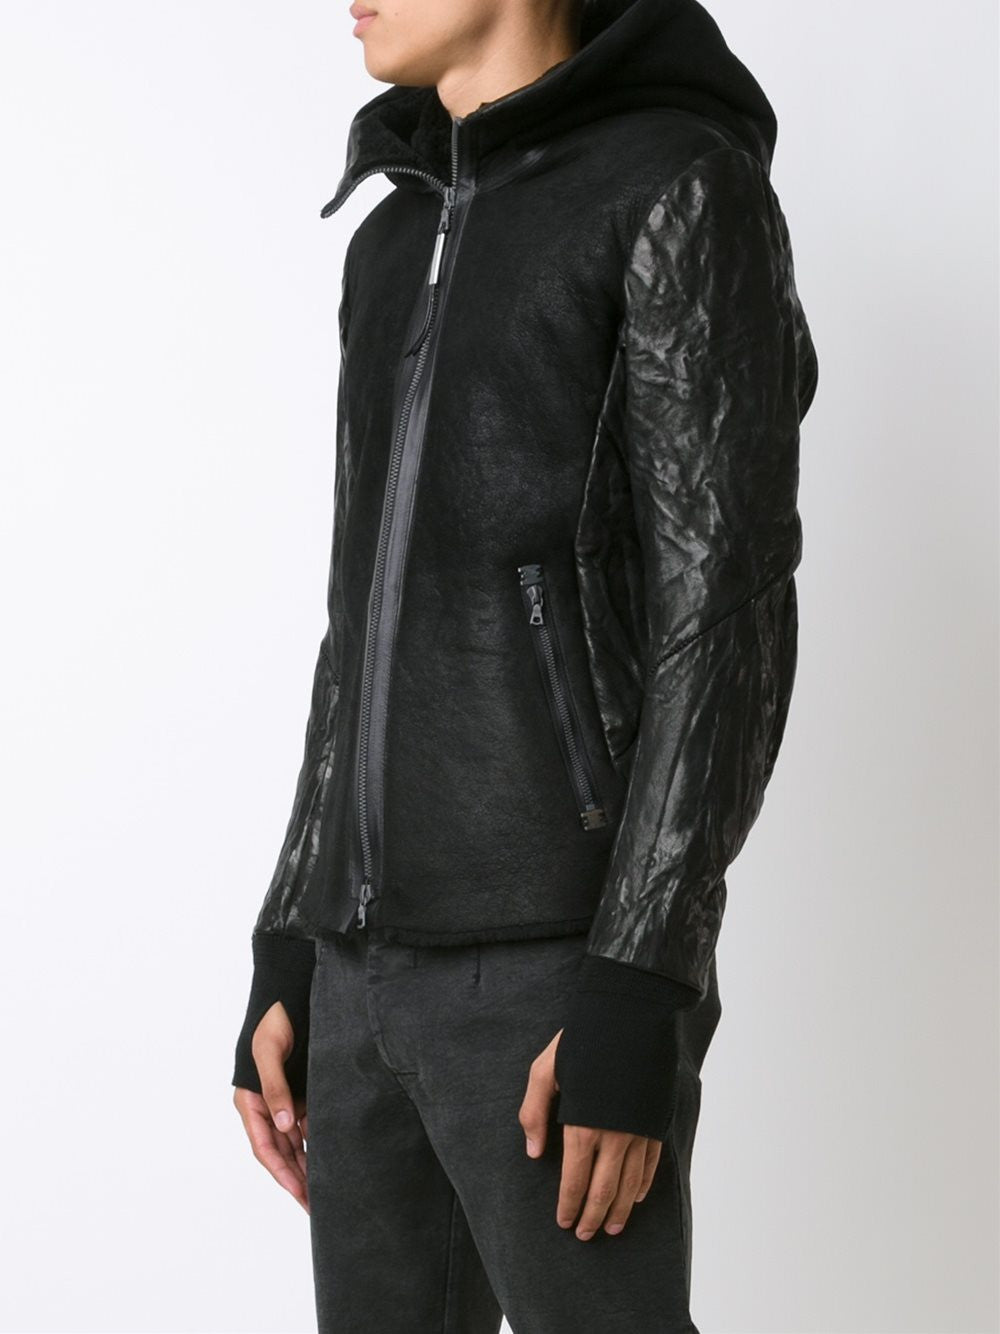 Down FIlled Lambskin Jacket | CLANDESTIN-BRRR